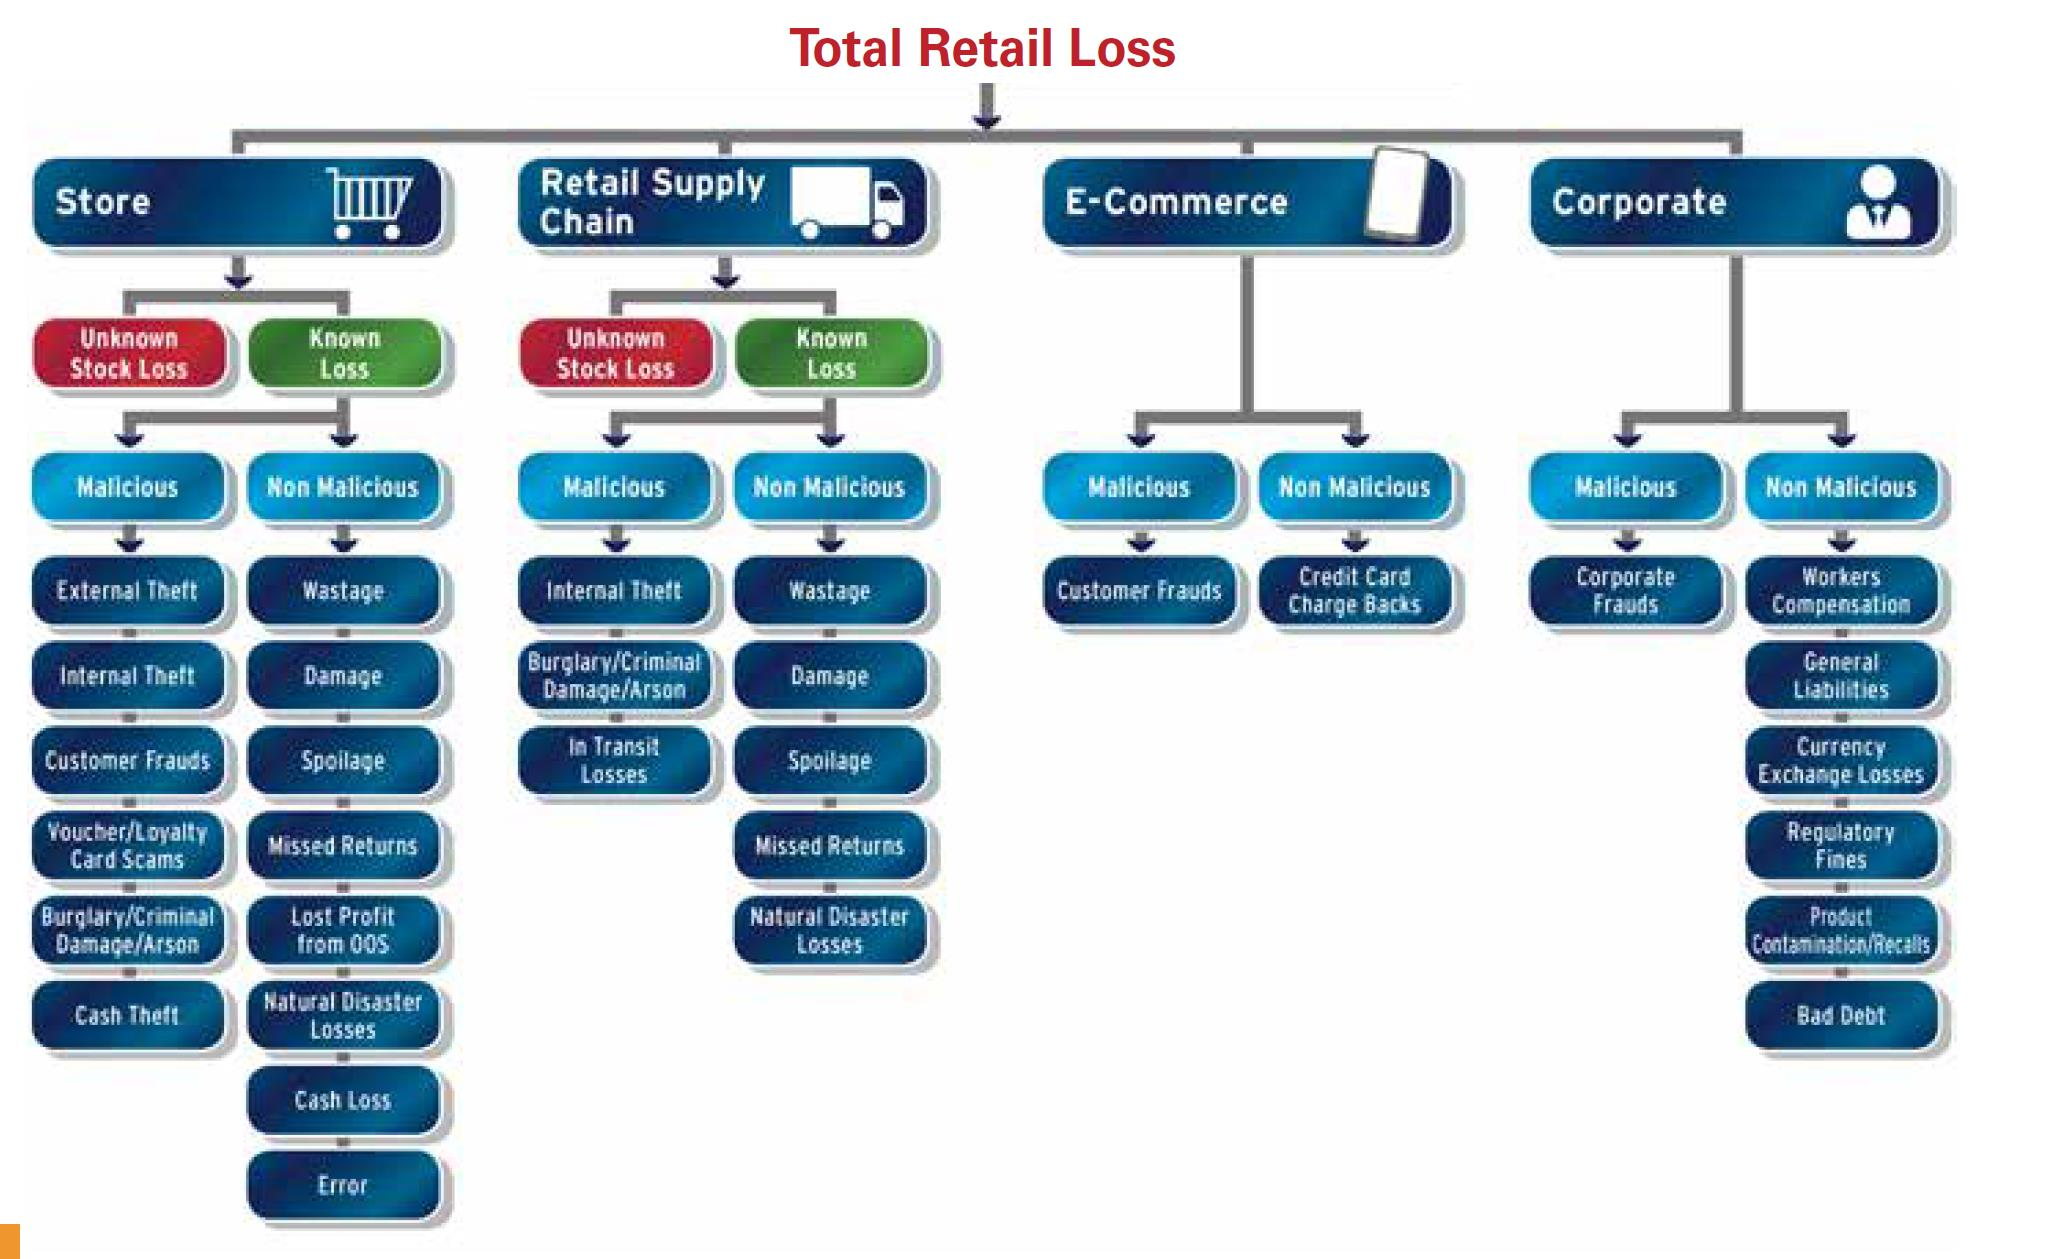 Flow chart showing total retail loss